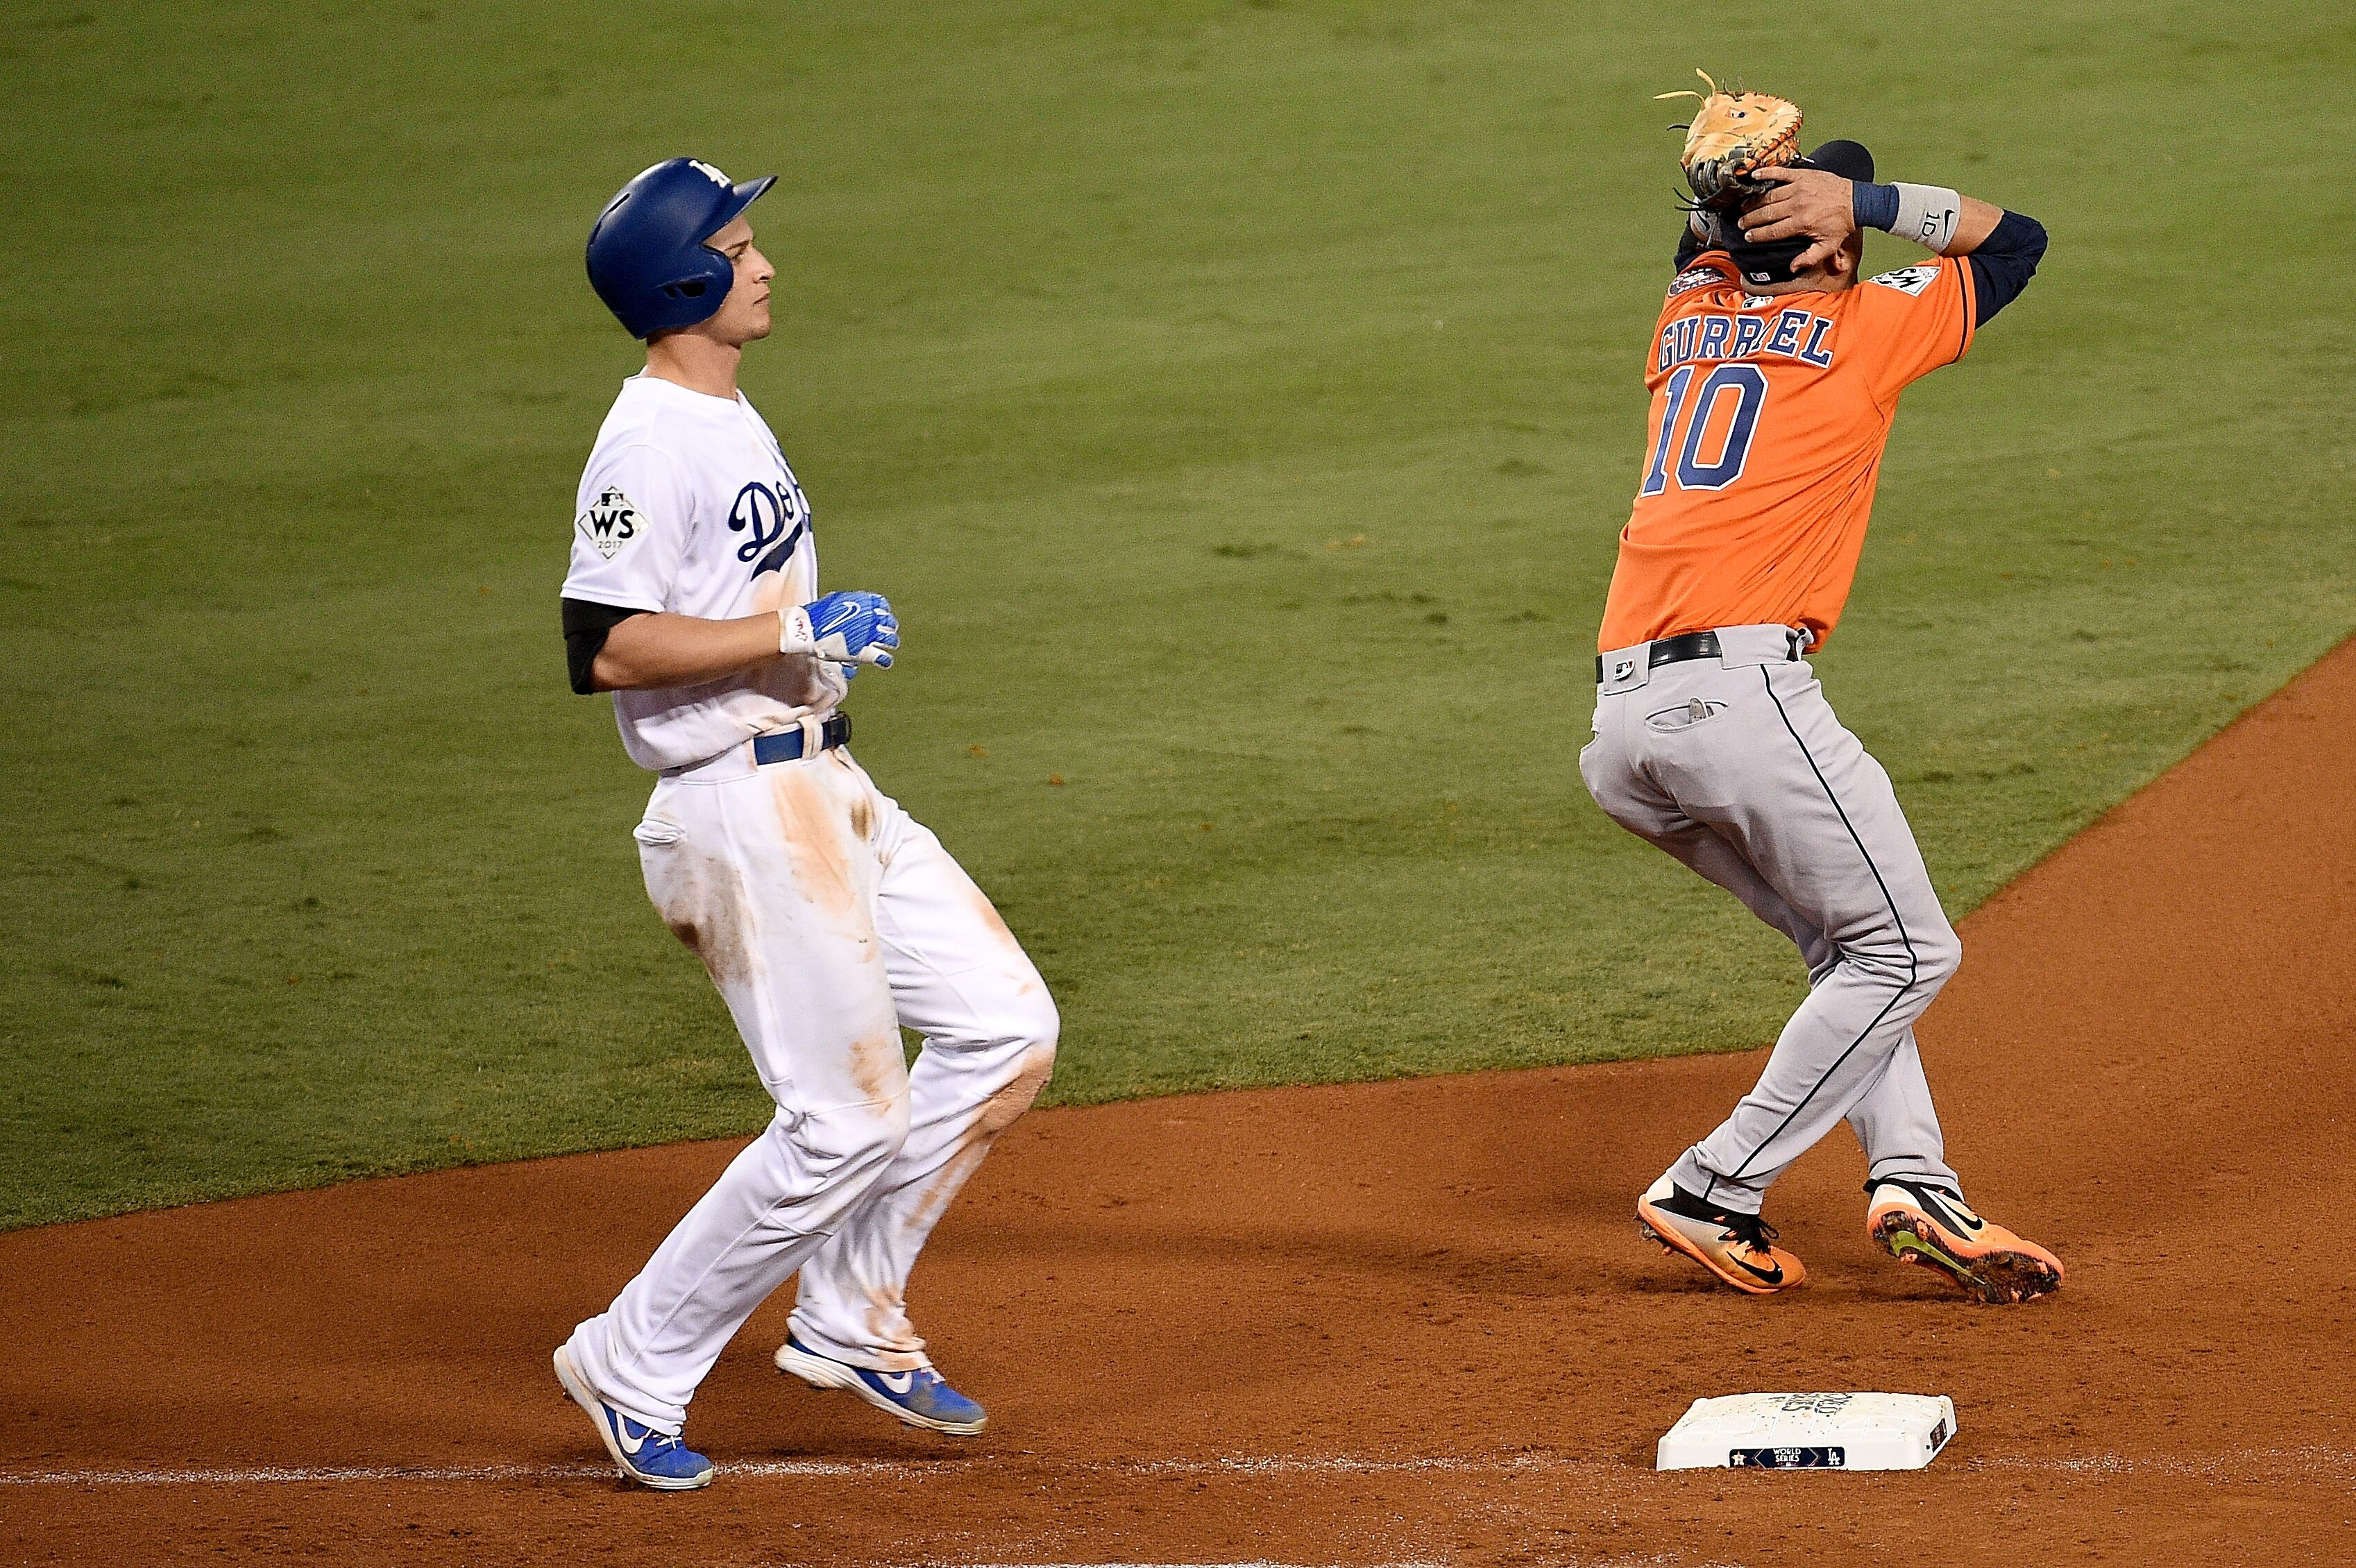 Los Angeles Dodgers: Did the Astros' sign stealing cost the World Series?